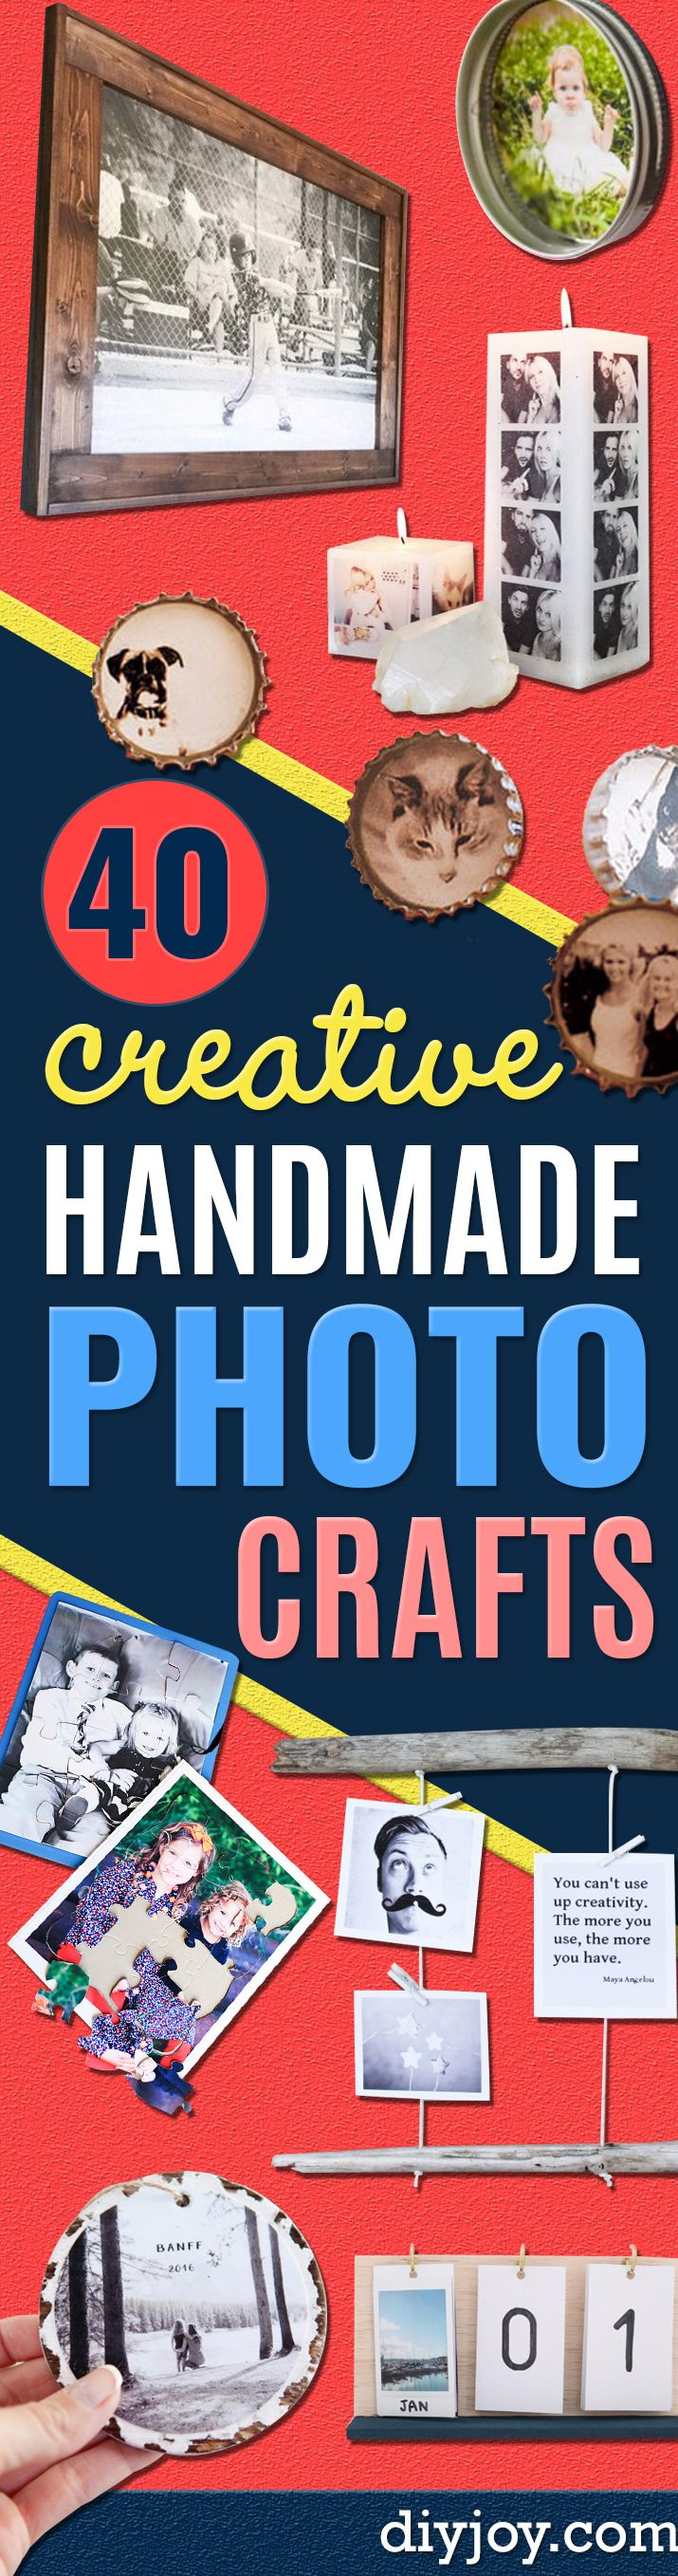 DIY Photo Crafts and Projects for Pictures - Handmade Picture Frame Ideas and Step by Step Tutorials for Making Cool DIY Gifts and Home Decor - Cheap and Easy Photo Frames, Creative Ways to Frame and Mount Photos on Canvas and Display Them In Your House